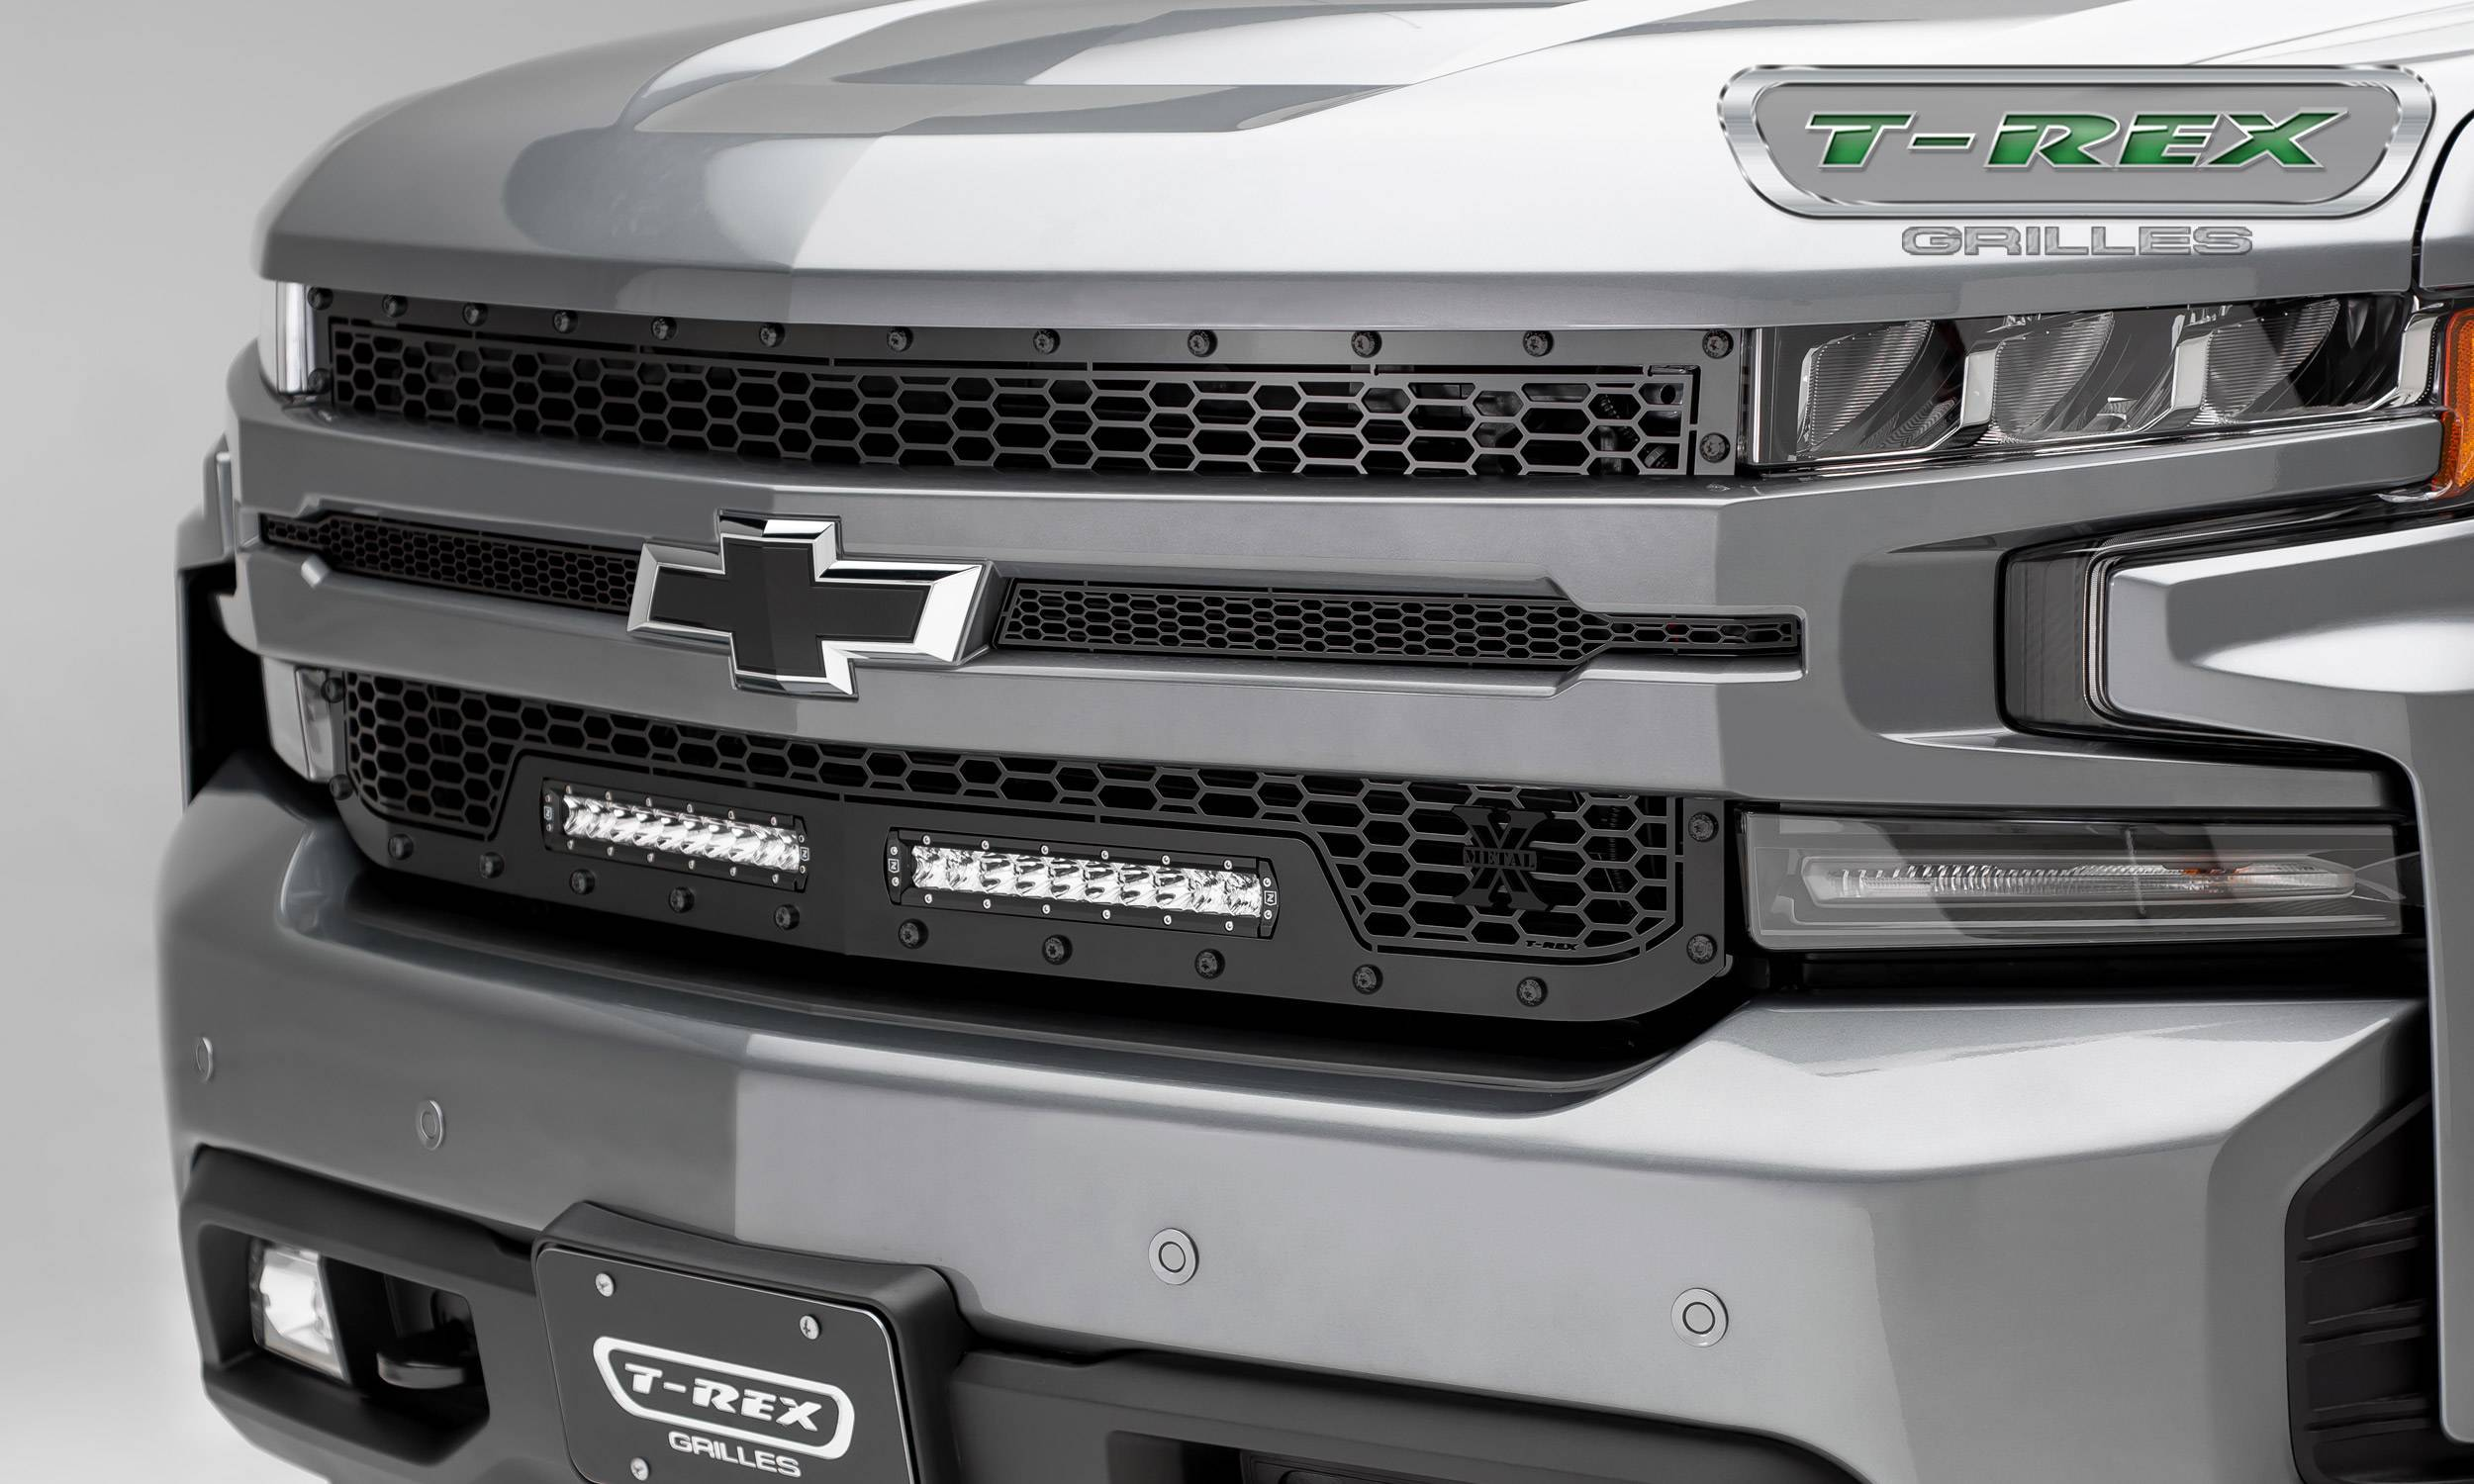 T-REX Grilles - 2019-2021 Silverado 1500 Stealth Laser Torch Grille, Black, 1 Pc, Replacement, Black Studs with (2) 10 Inch LEDs, Does Not Fit Vehicles with Camera - PN #7311261-BR